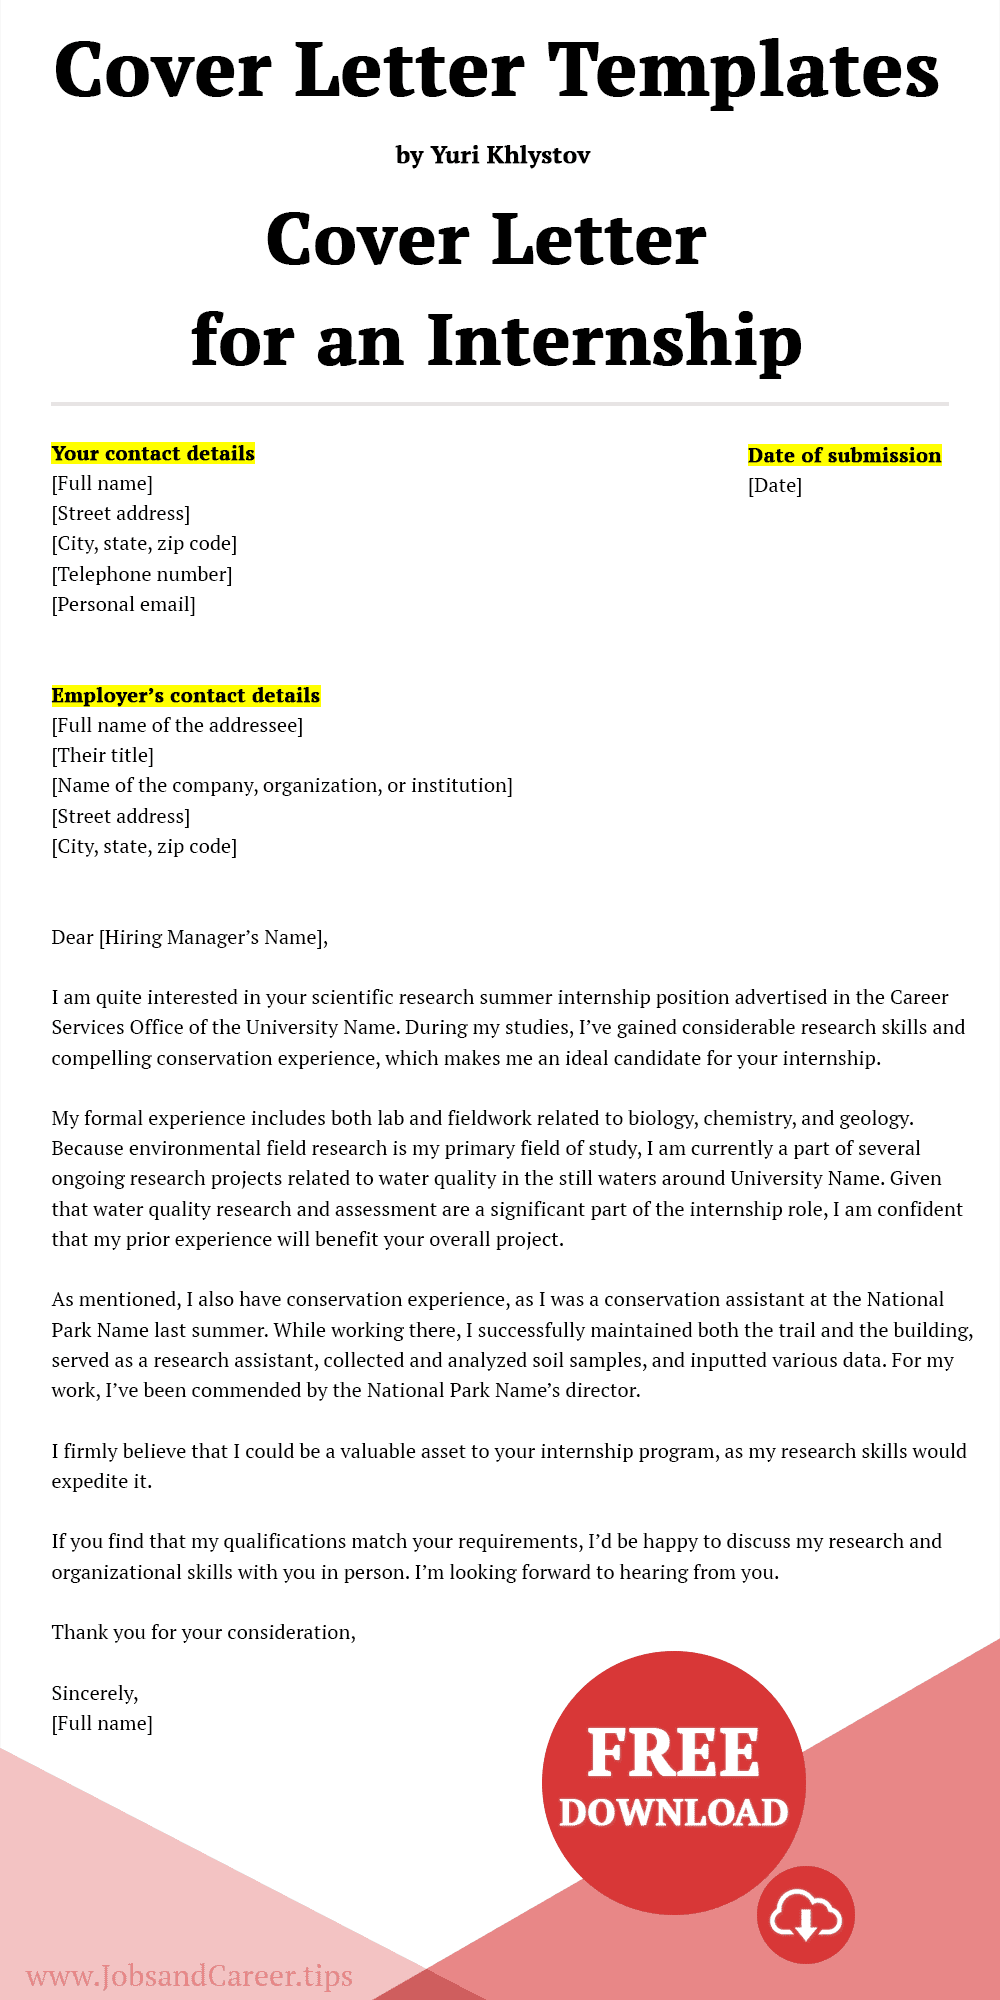 Click to download the cover letter for an internship